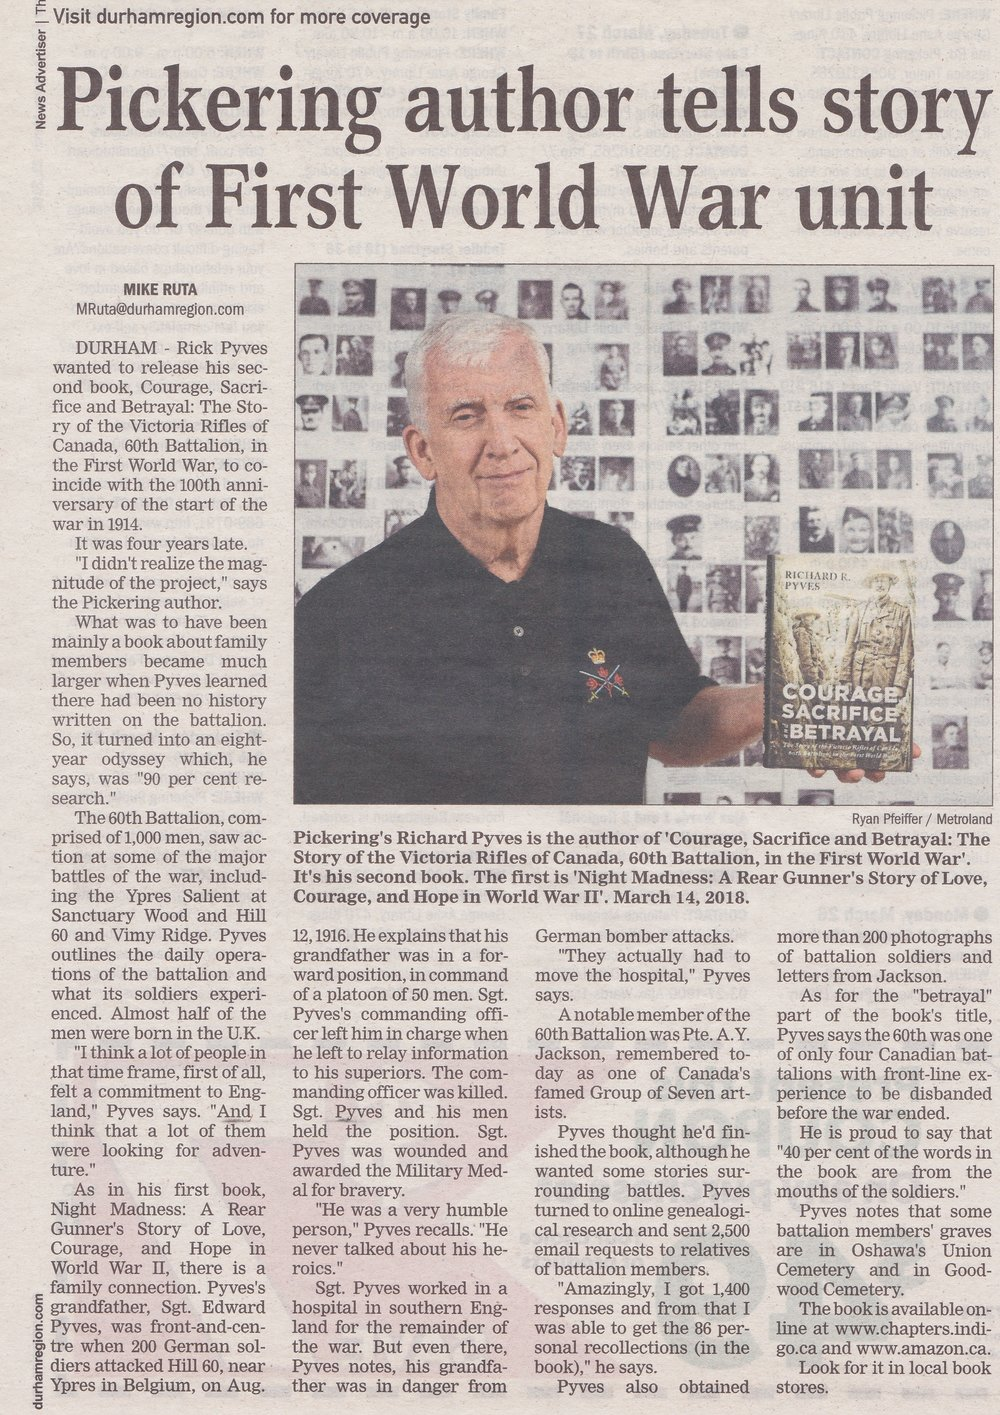 Article Courtesy of Pickering News Advertiser  - March 22, 2018